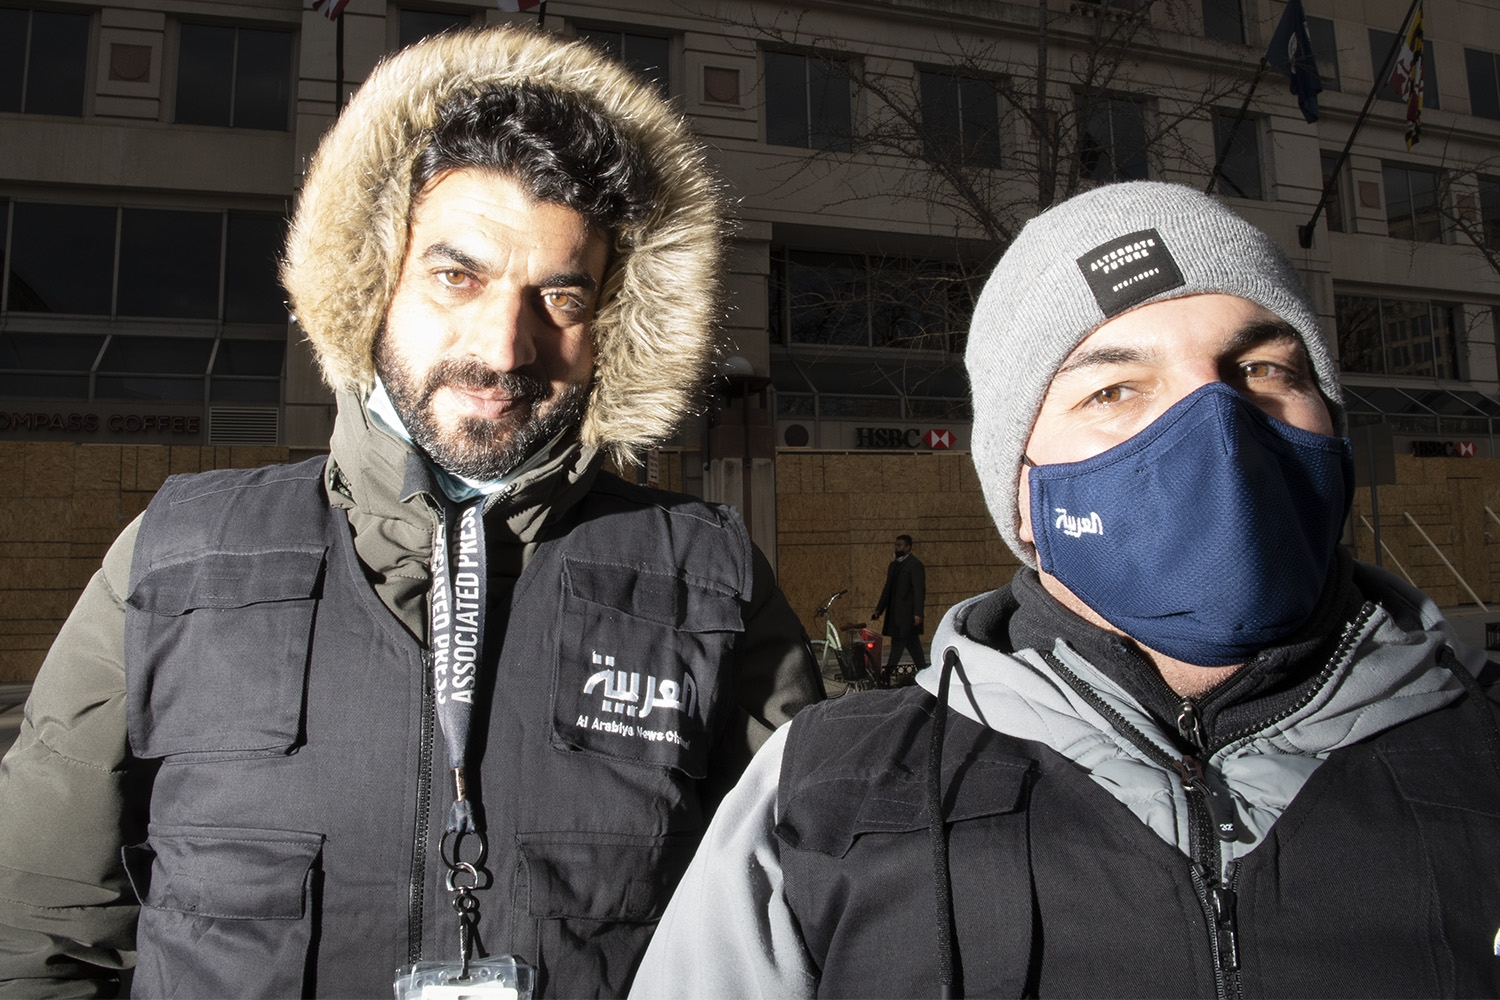 An image featuring two men. One the left, a man with dark hair and a dark goatee wears a black canvas vest over an army green winter coat with the fur lined hood pulled up over his head. The black vest features a patch with Arabic lettering. On the right, a shorter man wears a light grey winter hat, a blue facemask, a light grey winter jacket, and a black vest.